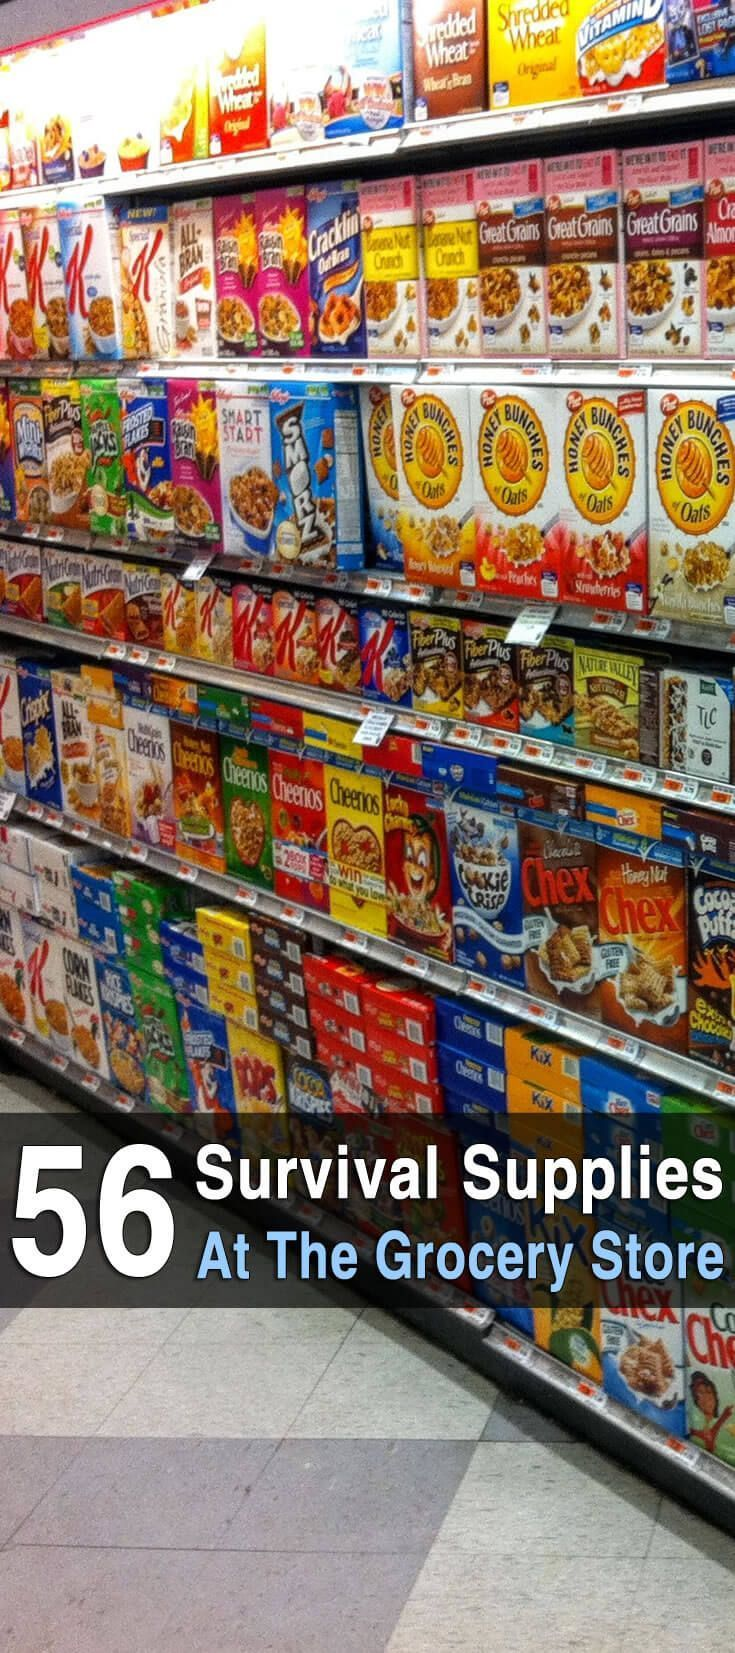 Survival food isn't just MRE's, canned bacon, space ice cream and the like. It's any type of food that lasts a long time without refrigeration. #Survivalfood #Urbansurvivasite #Survival